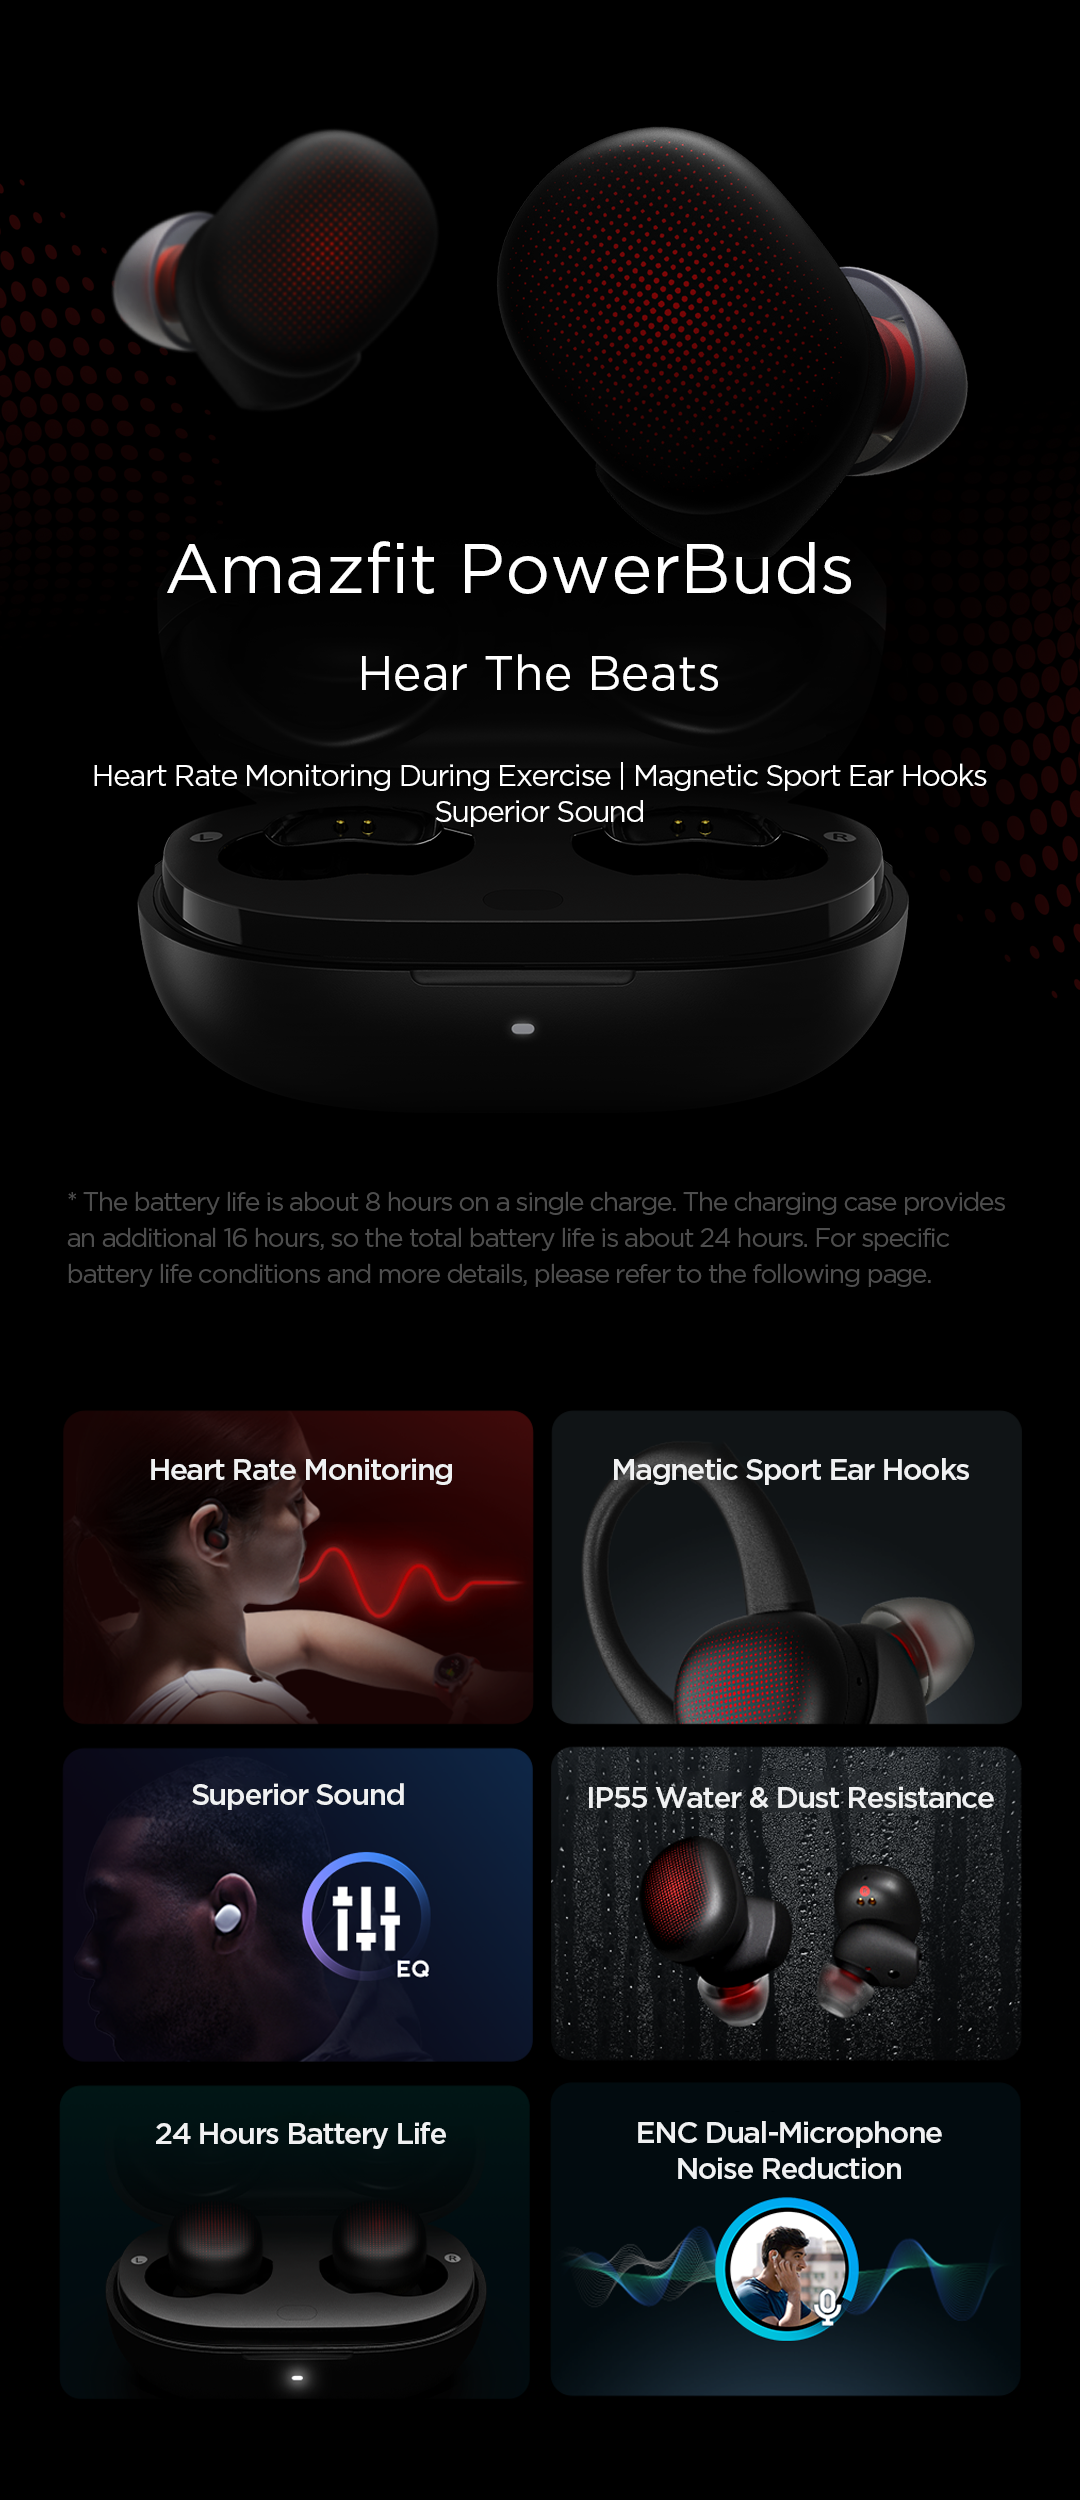 Amazfit PowerBuds True Wireless Earbuds 5